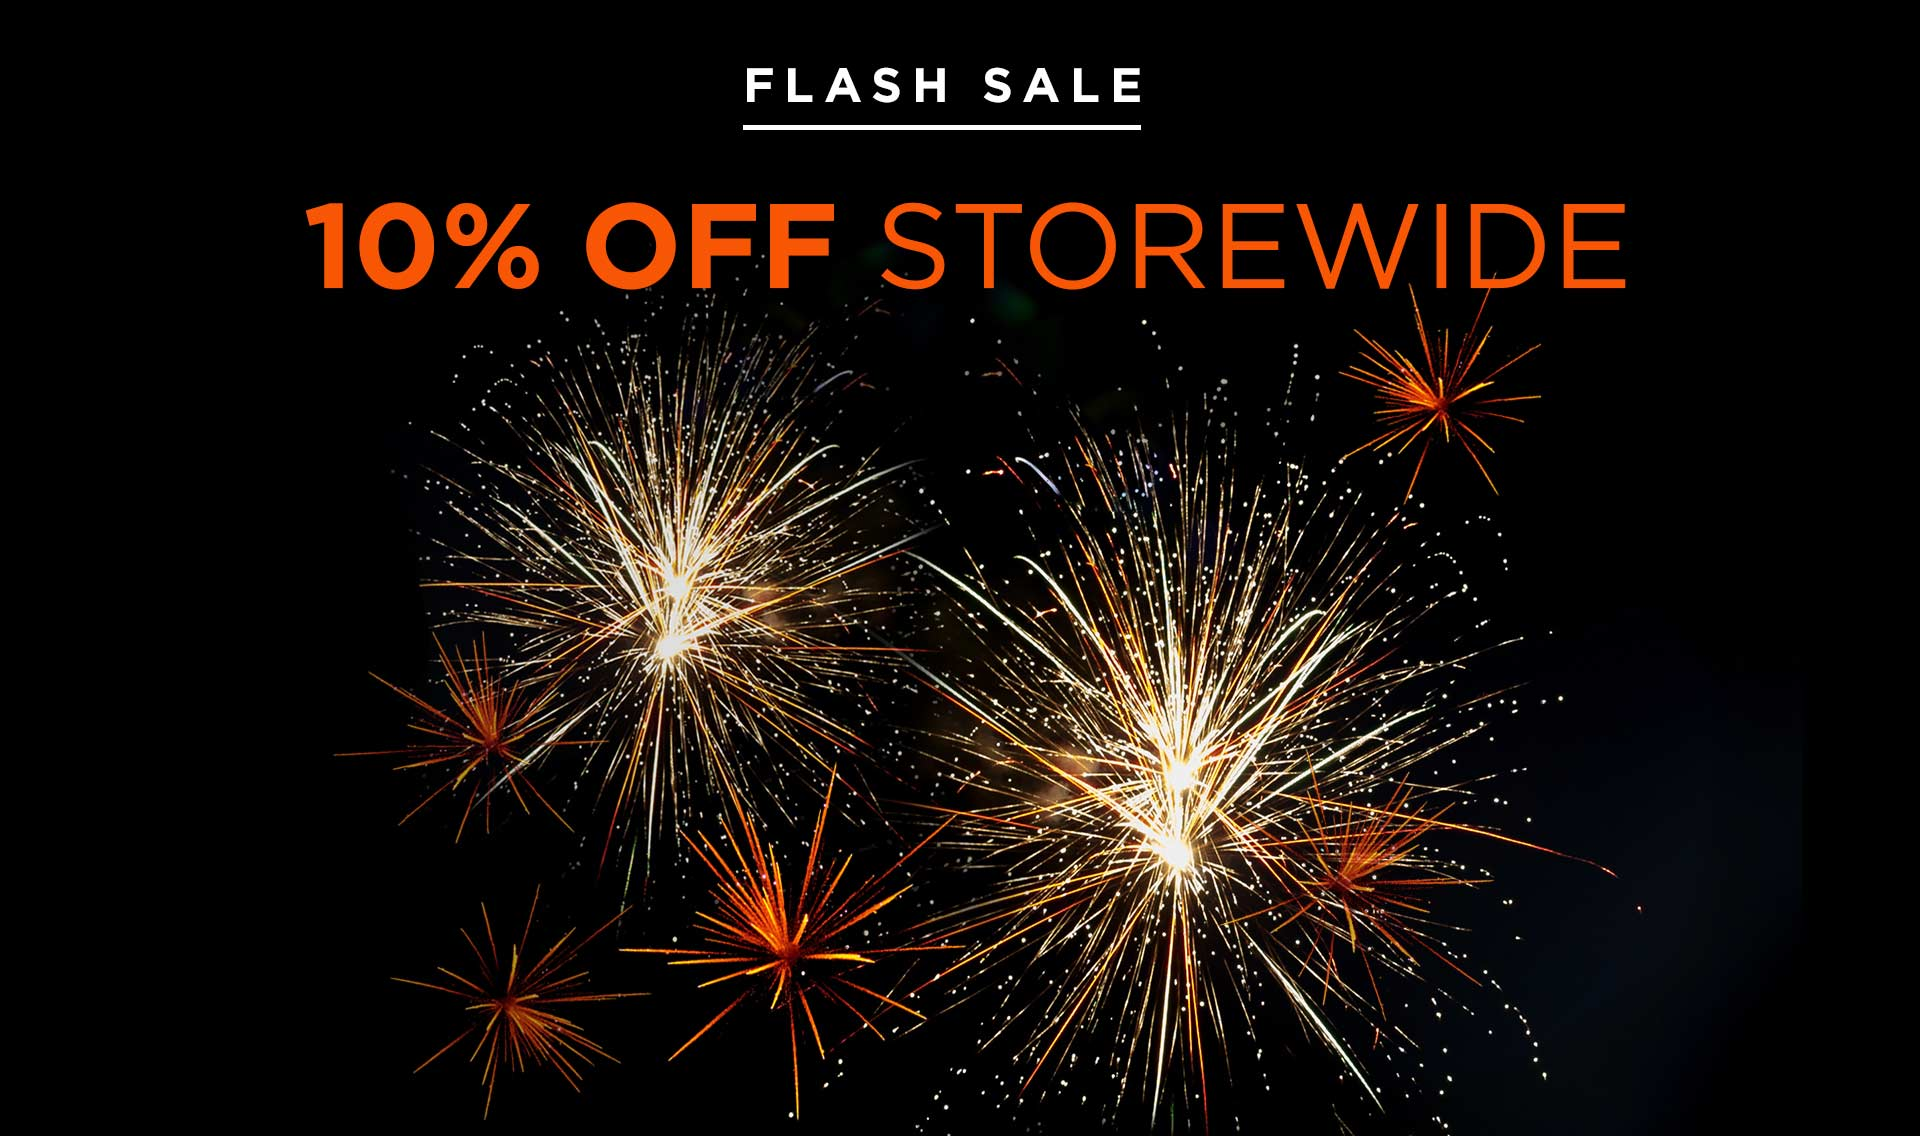 FLASH SALE - 10% OFF STORE WIDE